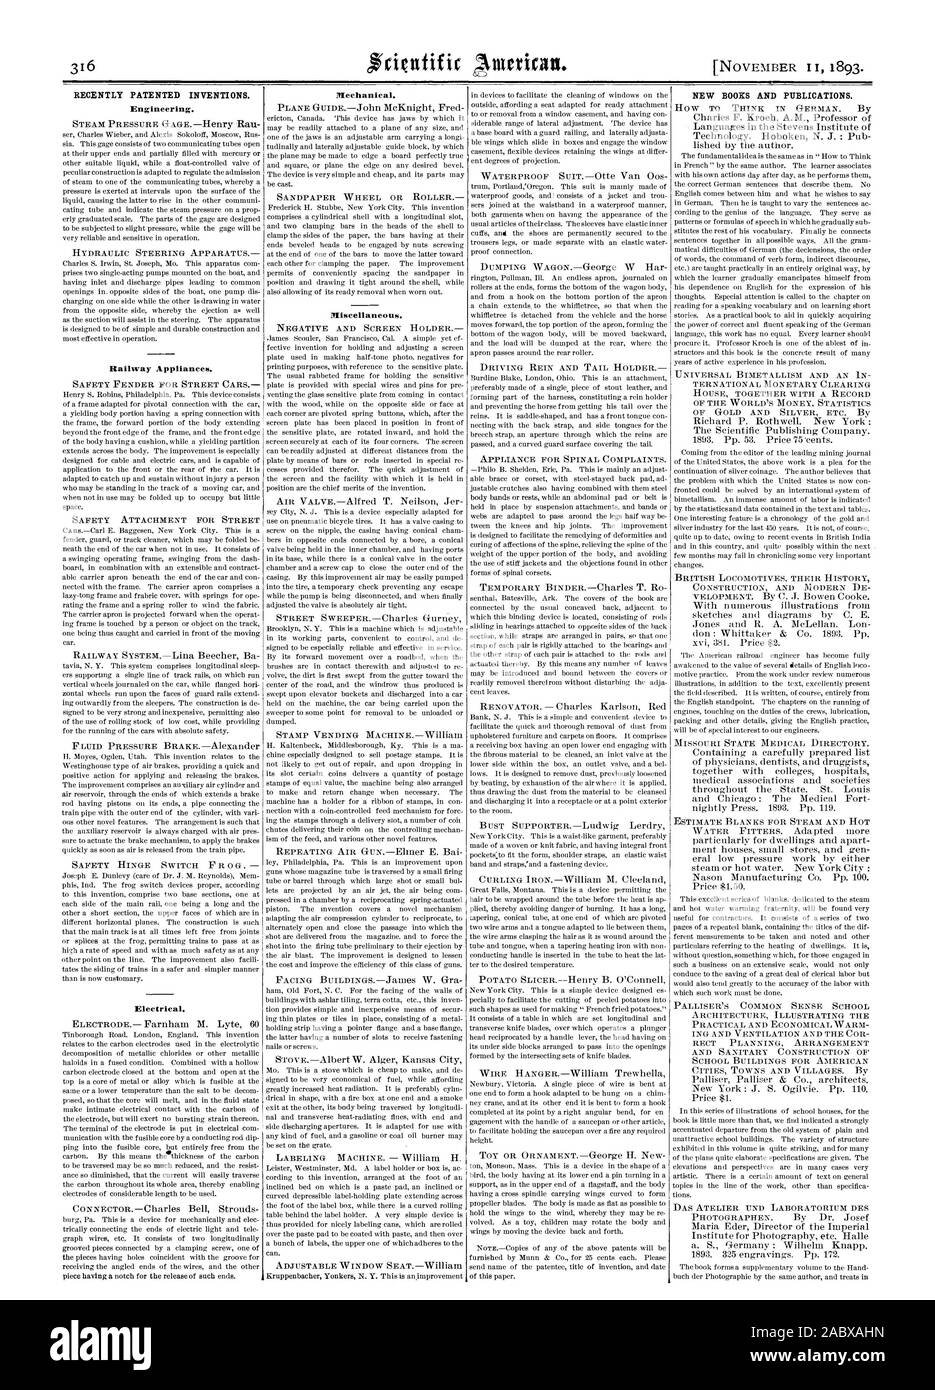 RECENTLY PATENTED INVENTIONS. Engineering. Railway Appliances. Electrical. Mechanical. Miscellaneous. NEW BOOKS AND PUBLICATIONS., scientific american, 1893 Stock Photo